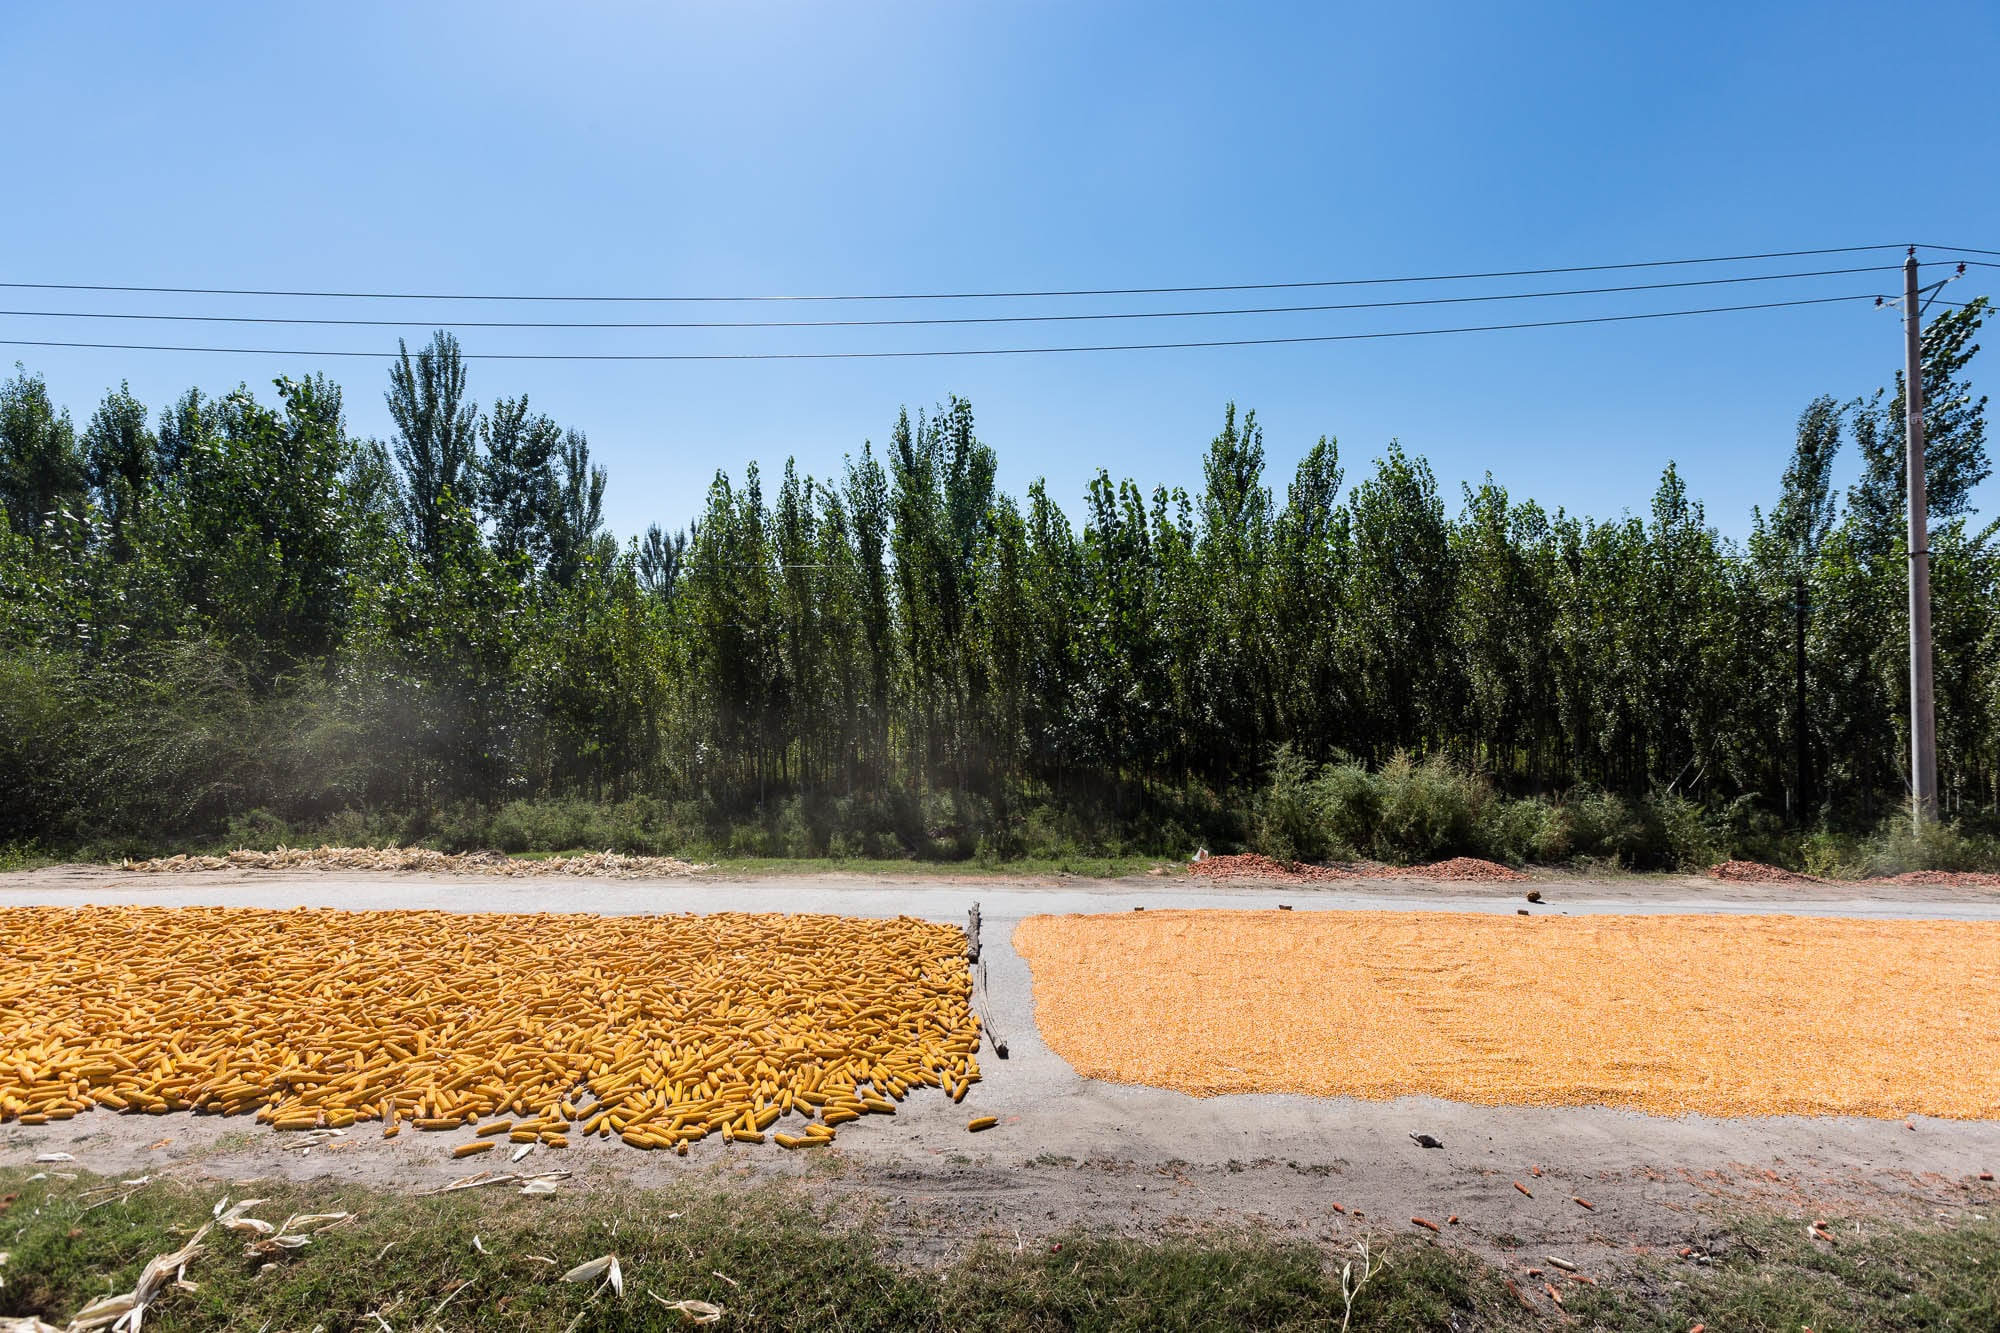 corn on the road